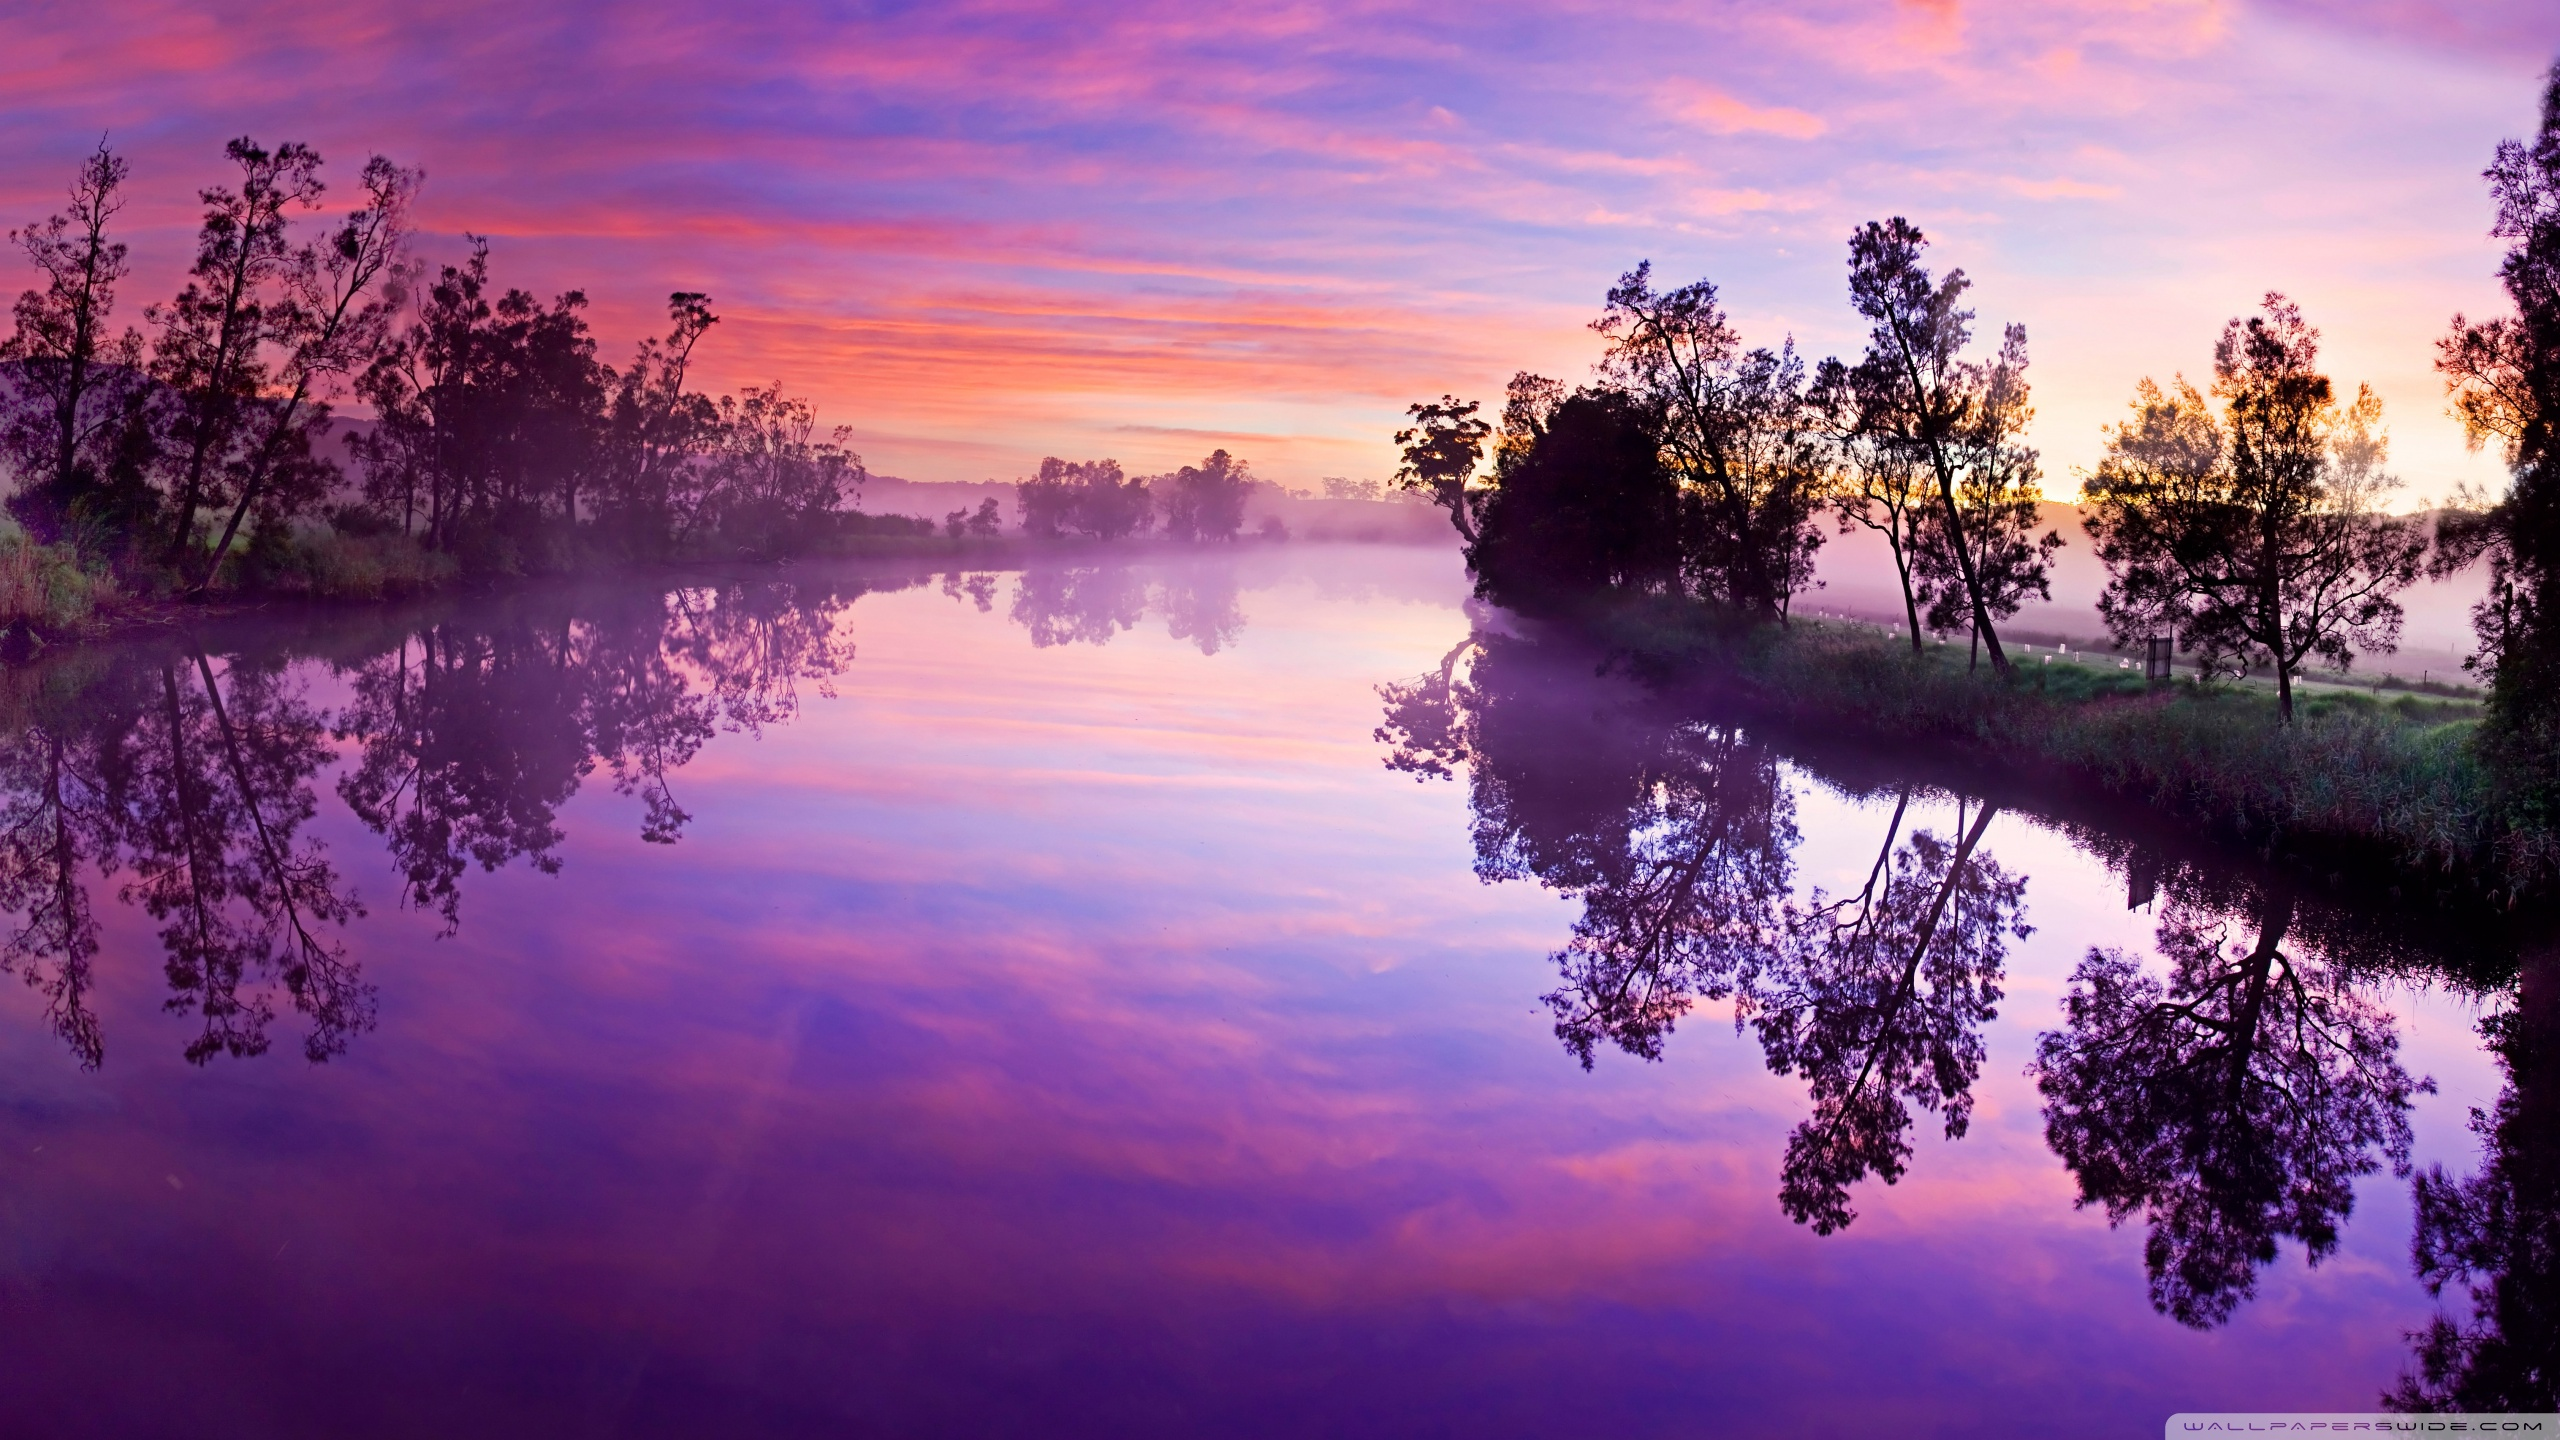 purple_river_reflection-wallpaper-2560x1440